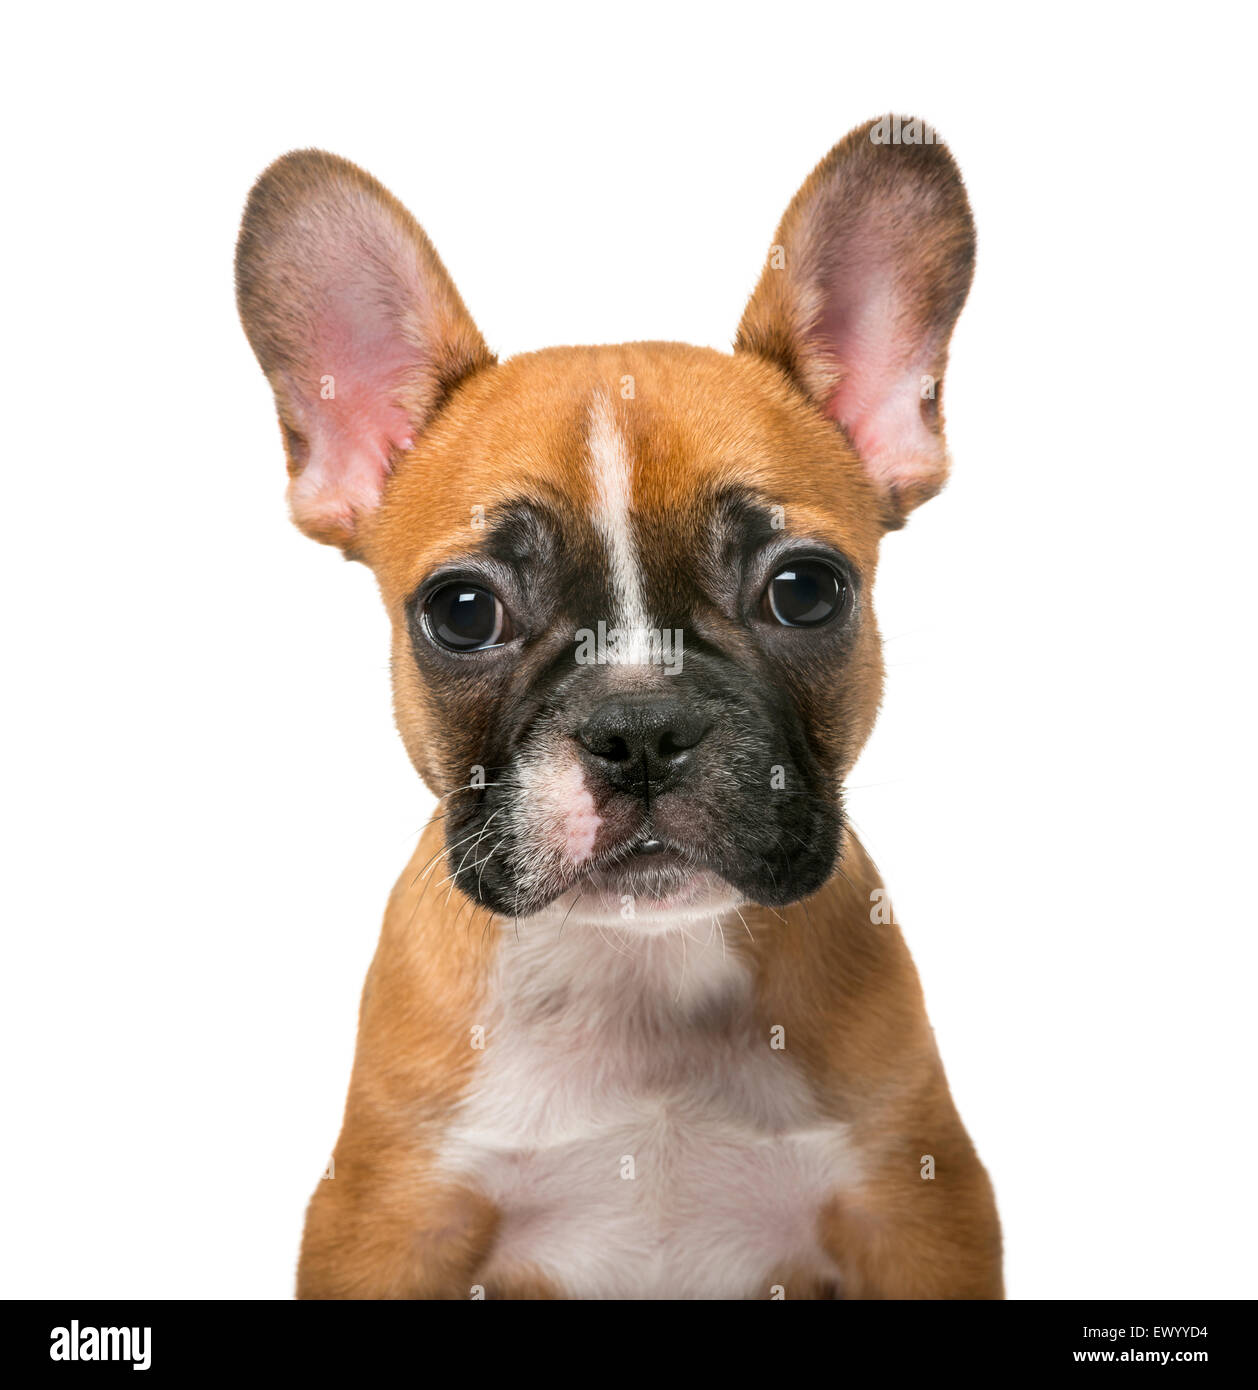 French Bulldog puppy in front of white background Stock Photo